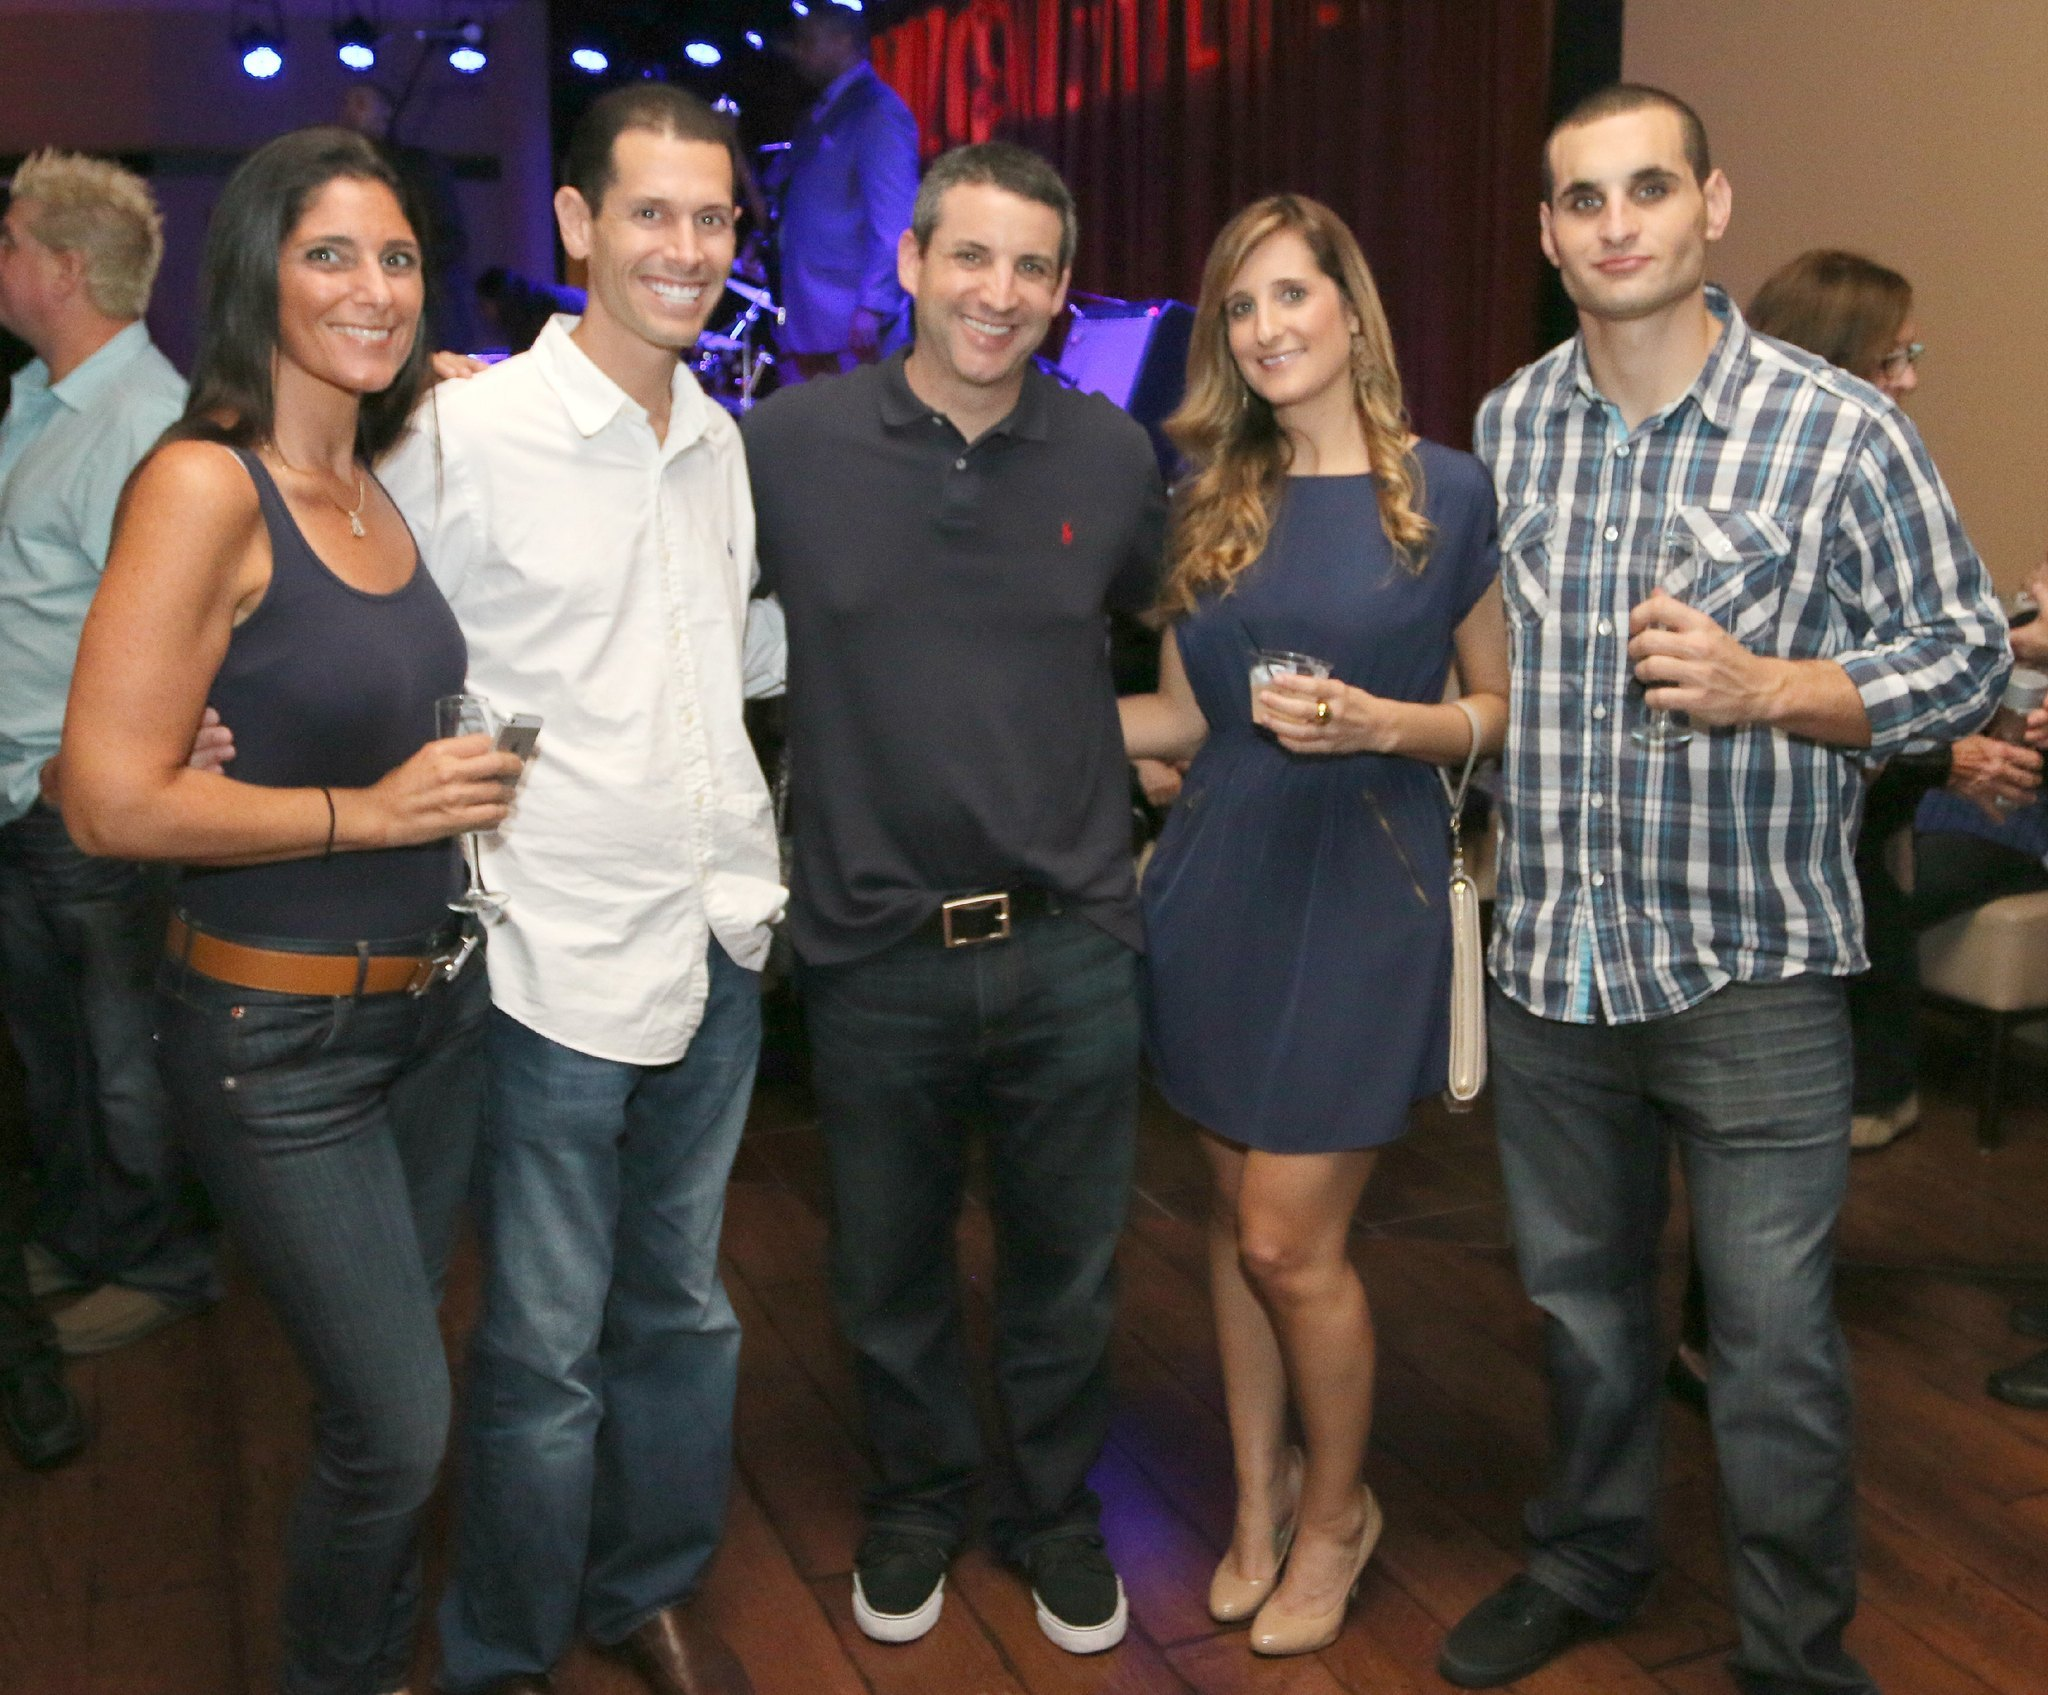 Jazziz Nightlife Grand Opening Party - Jay and Jen Vogel, Ryan Lieber, Cassie Zayne and Derek Zayne